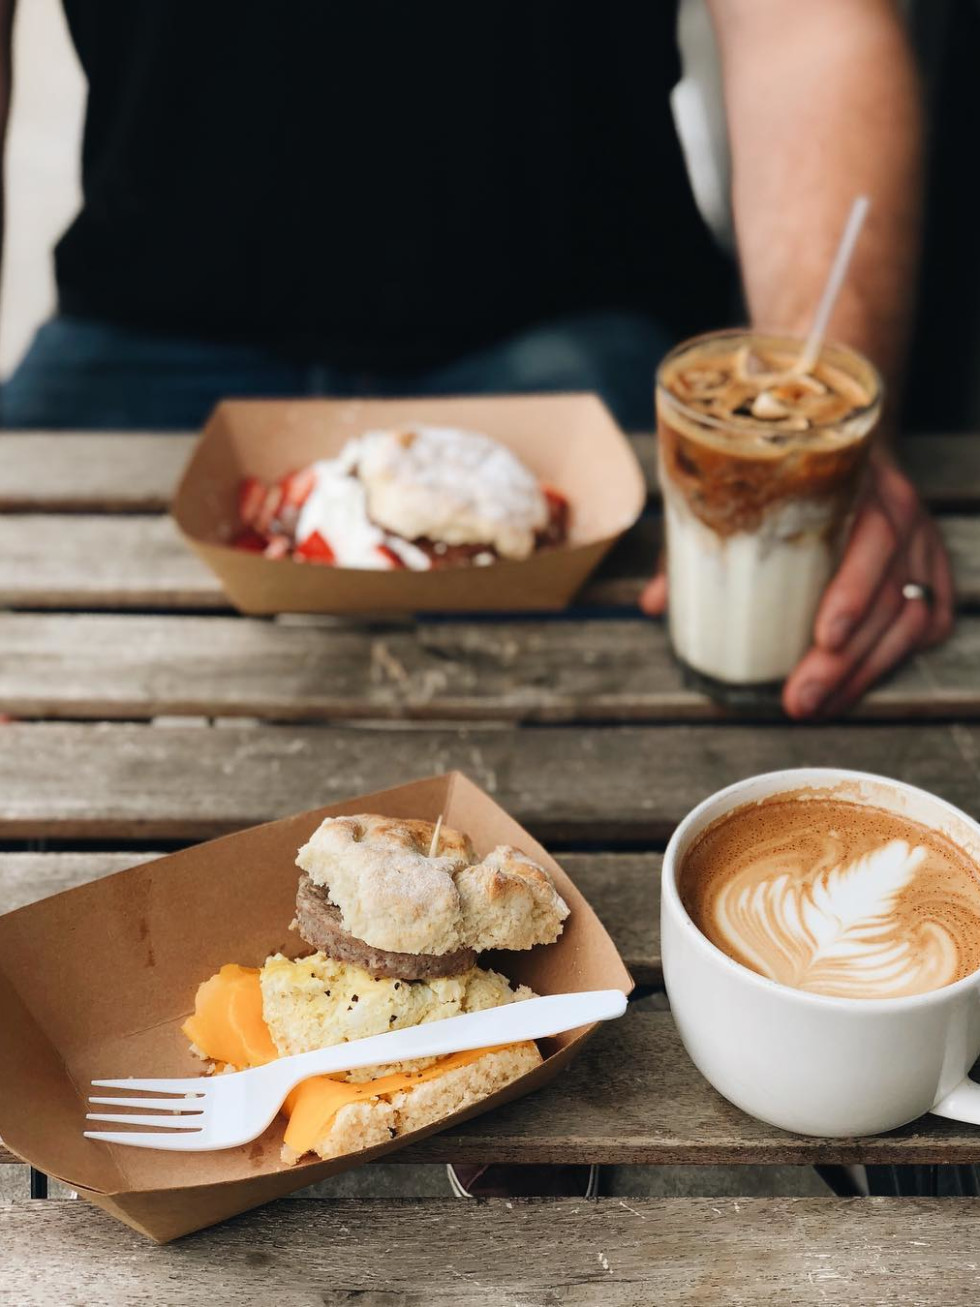 Dwell Coffee & Biscuits in Burleson